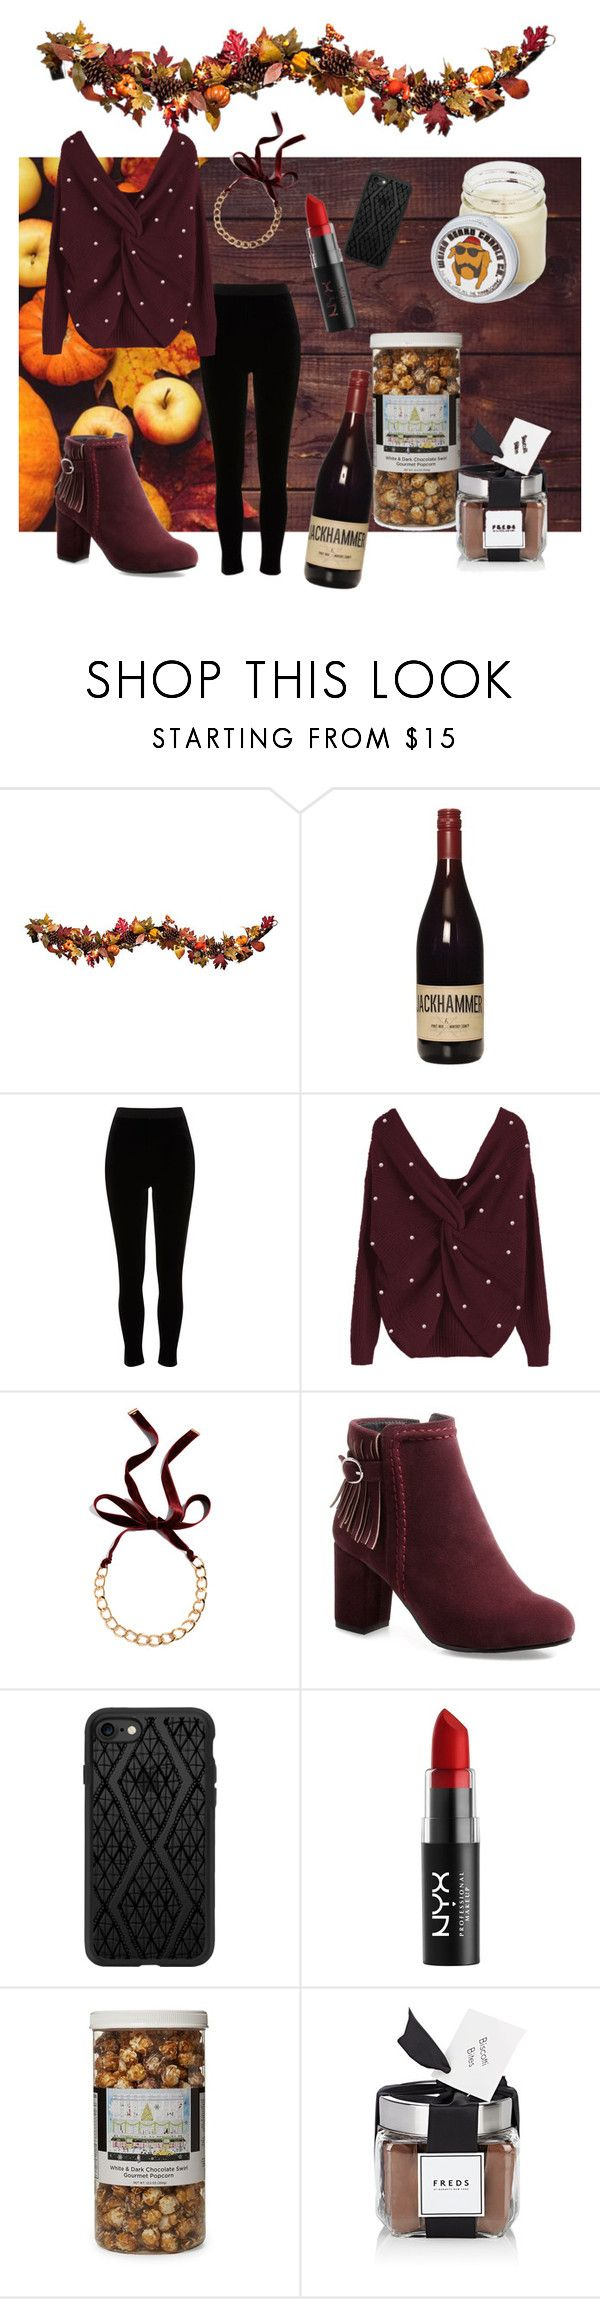 """""""Thanksgiving"""" by pretty-and-practical ❤ liked on Polyvore featuring Improvements, River Island, Chan Luu, Casetify, NYX, The Hampton Popcorn Company and FREDS at Barneys New York"""